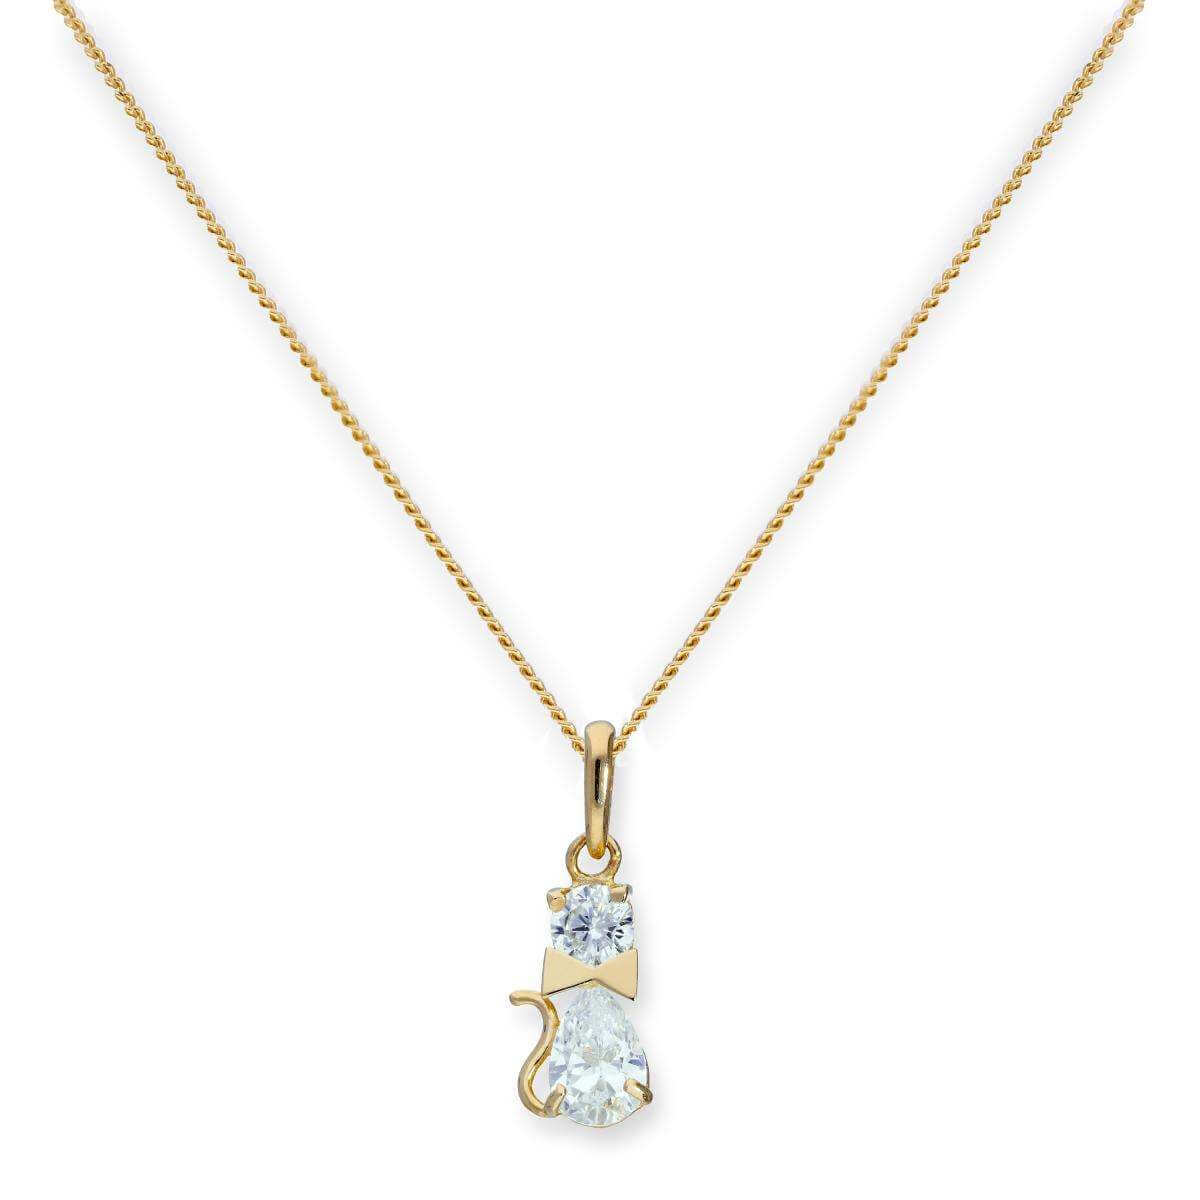 9ct Gold & Clear CZ Crystal Cat w Bow Collar Pendant Necklace 16 - 20 Inches